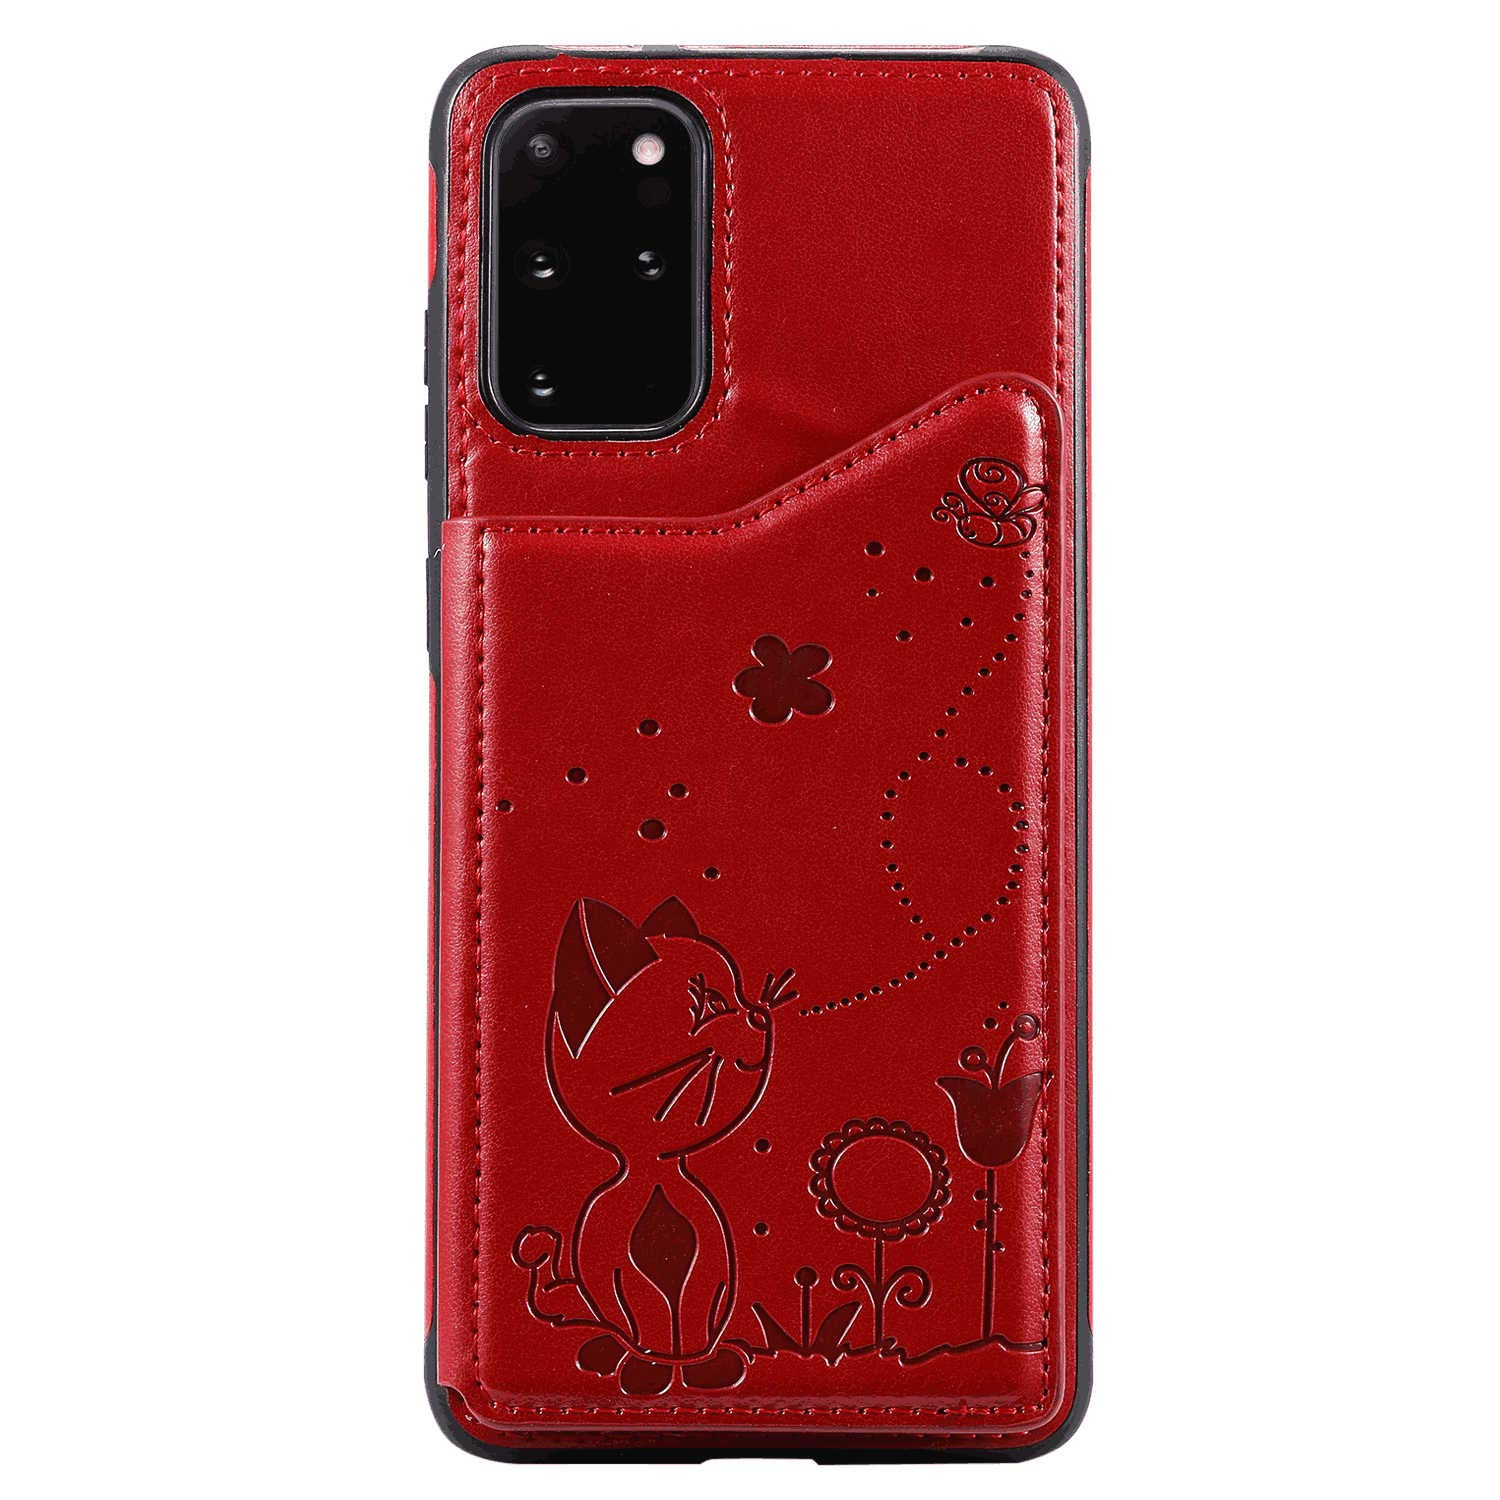 PU Leather Flip Cover Compatible with iPhone 11, Elegant red Wallet Case for iPhone 11